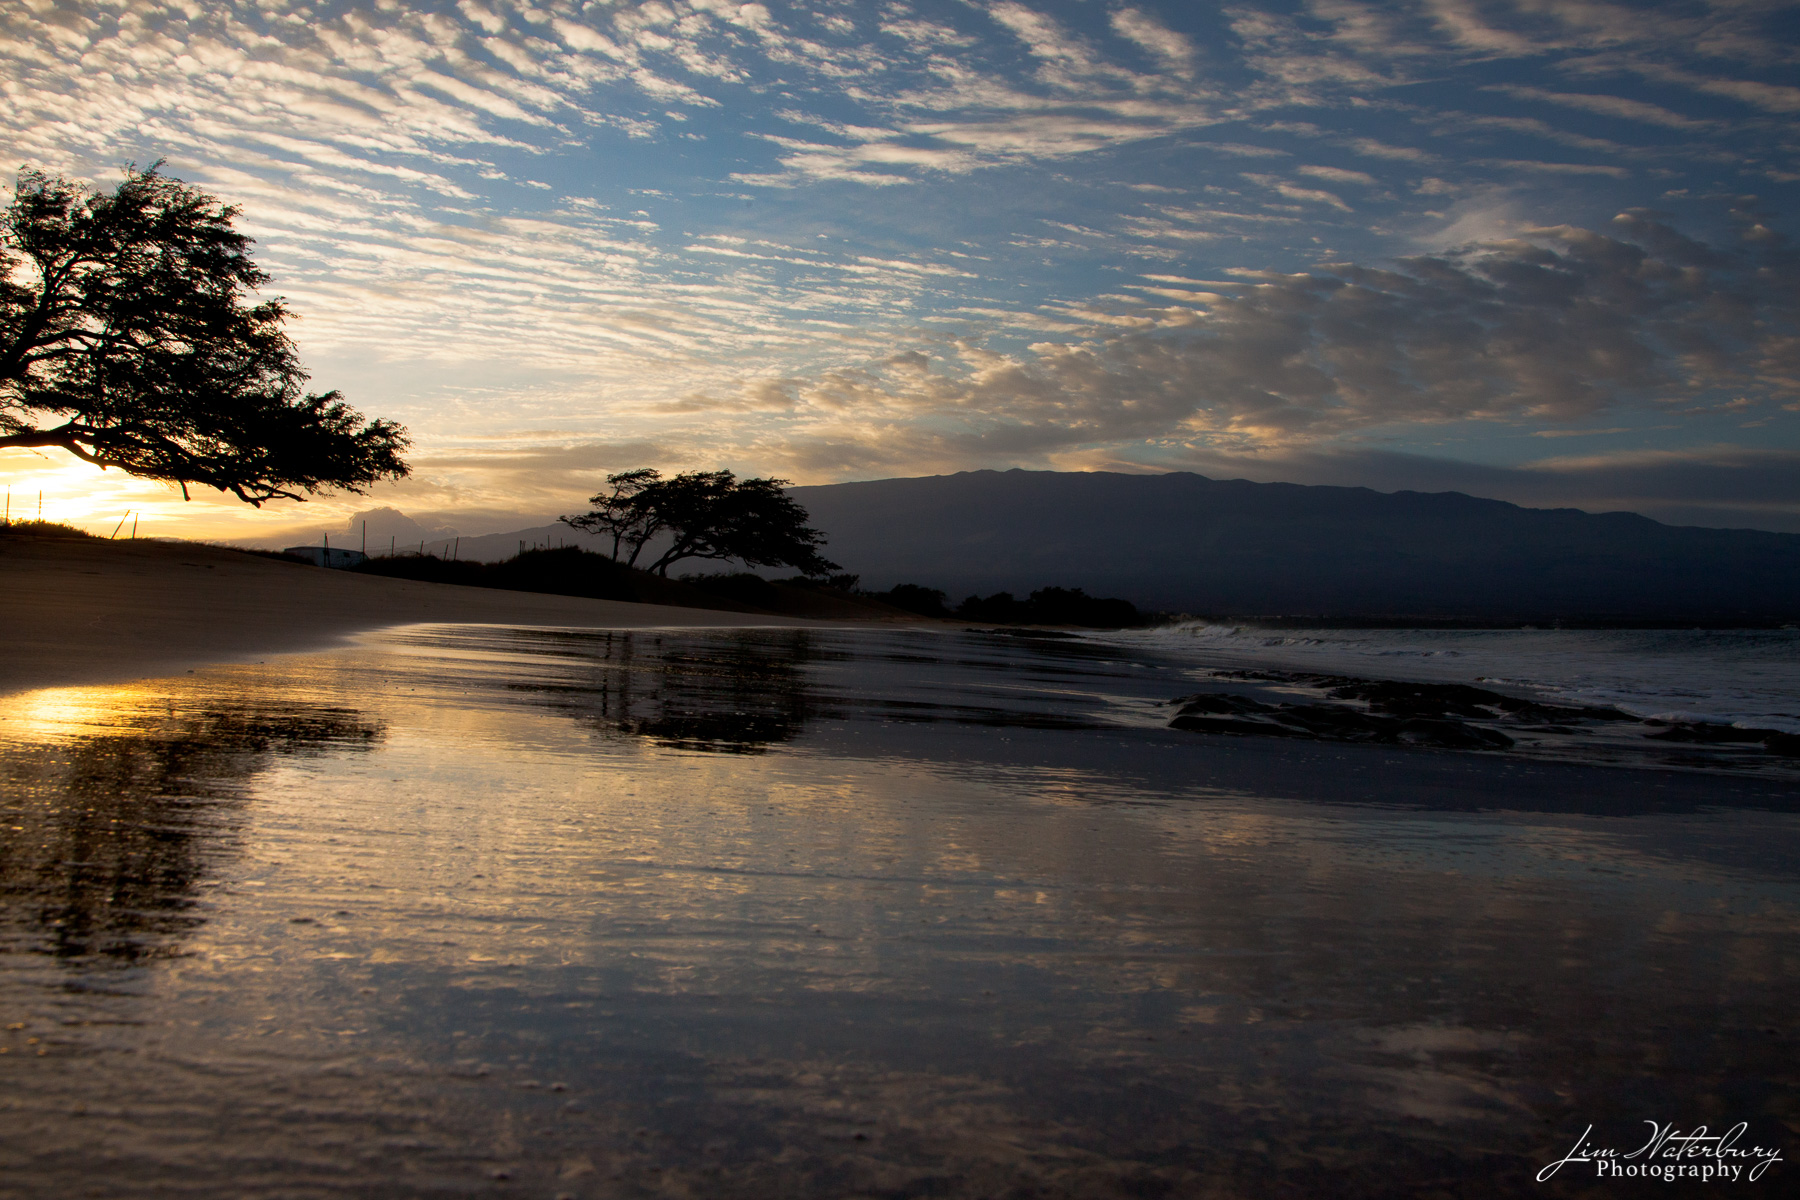 A new day dawns, just after sunrise along the bay by the Kealia Bird Sanctuary on the island of Maui.